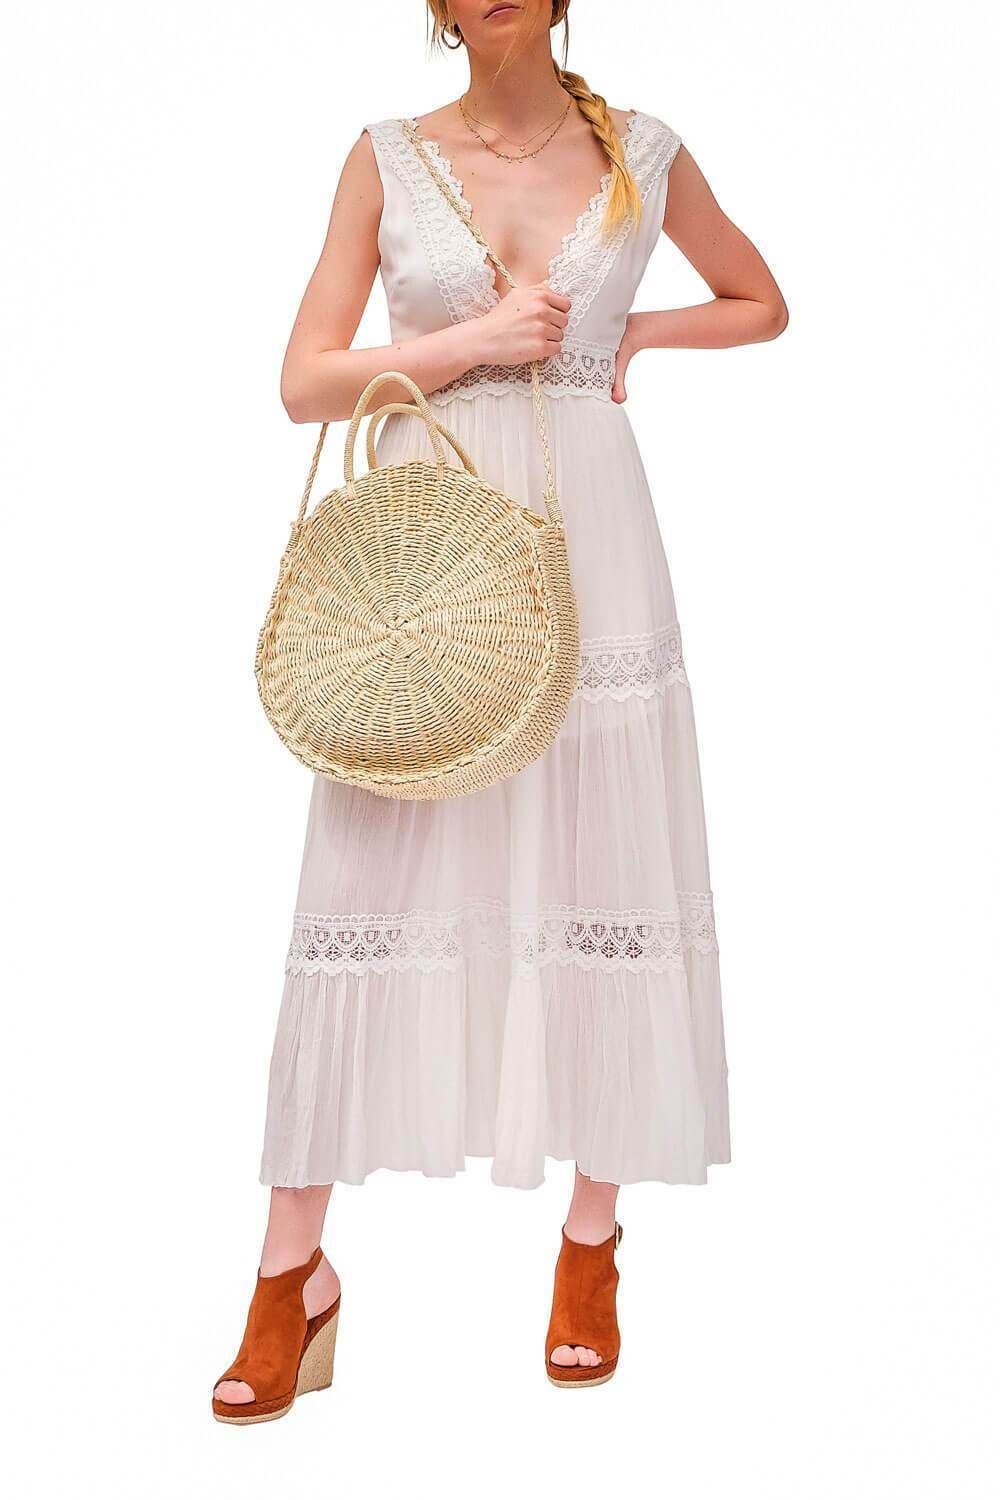 Palm Springs Lace Dress White lifestyle - MILK MONEY